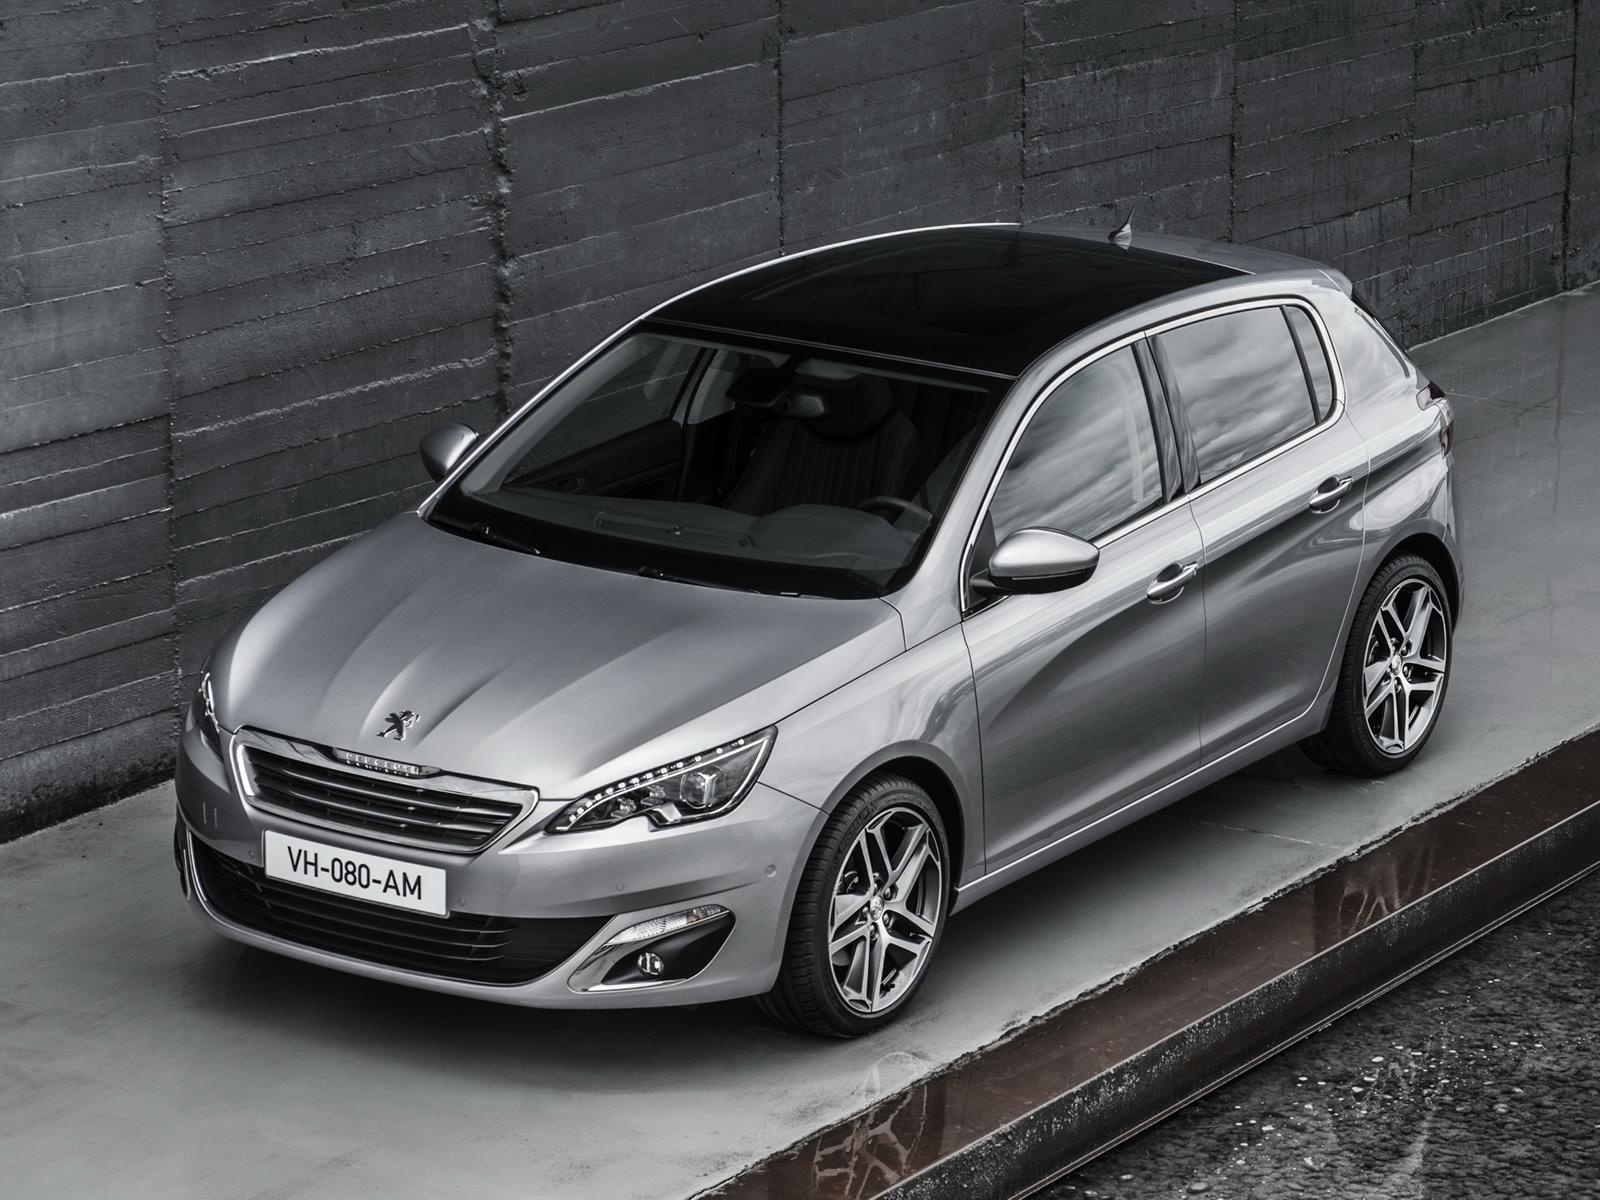 peugeot 308 5 doors specs 2013 2014 2015 2016 2017 autoevolution. Black Bedroom Furniture Sets. Home Design Ideas